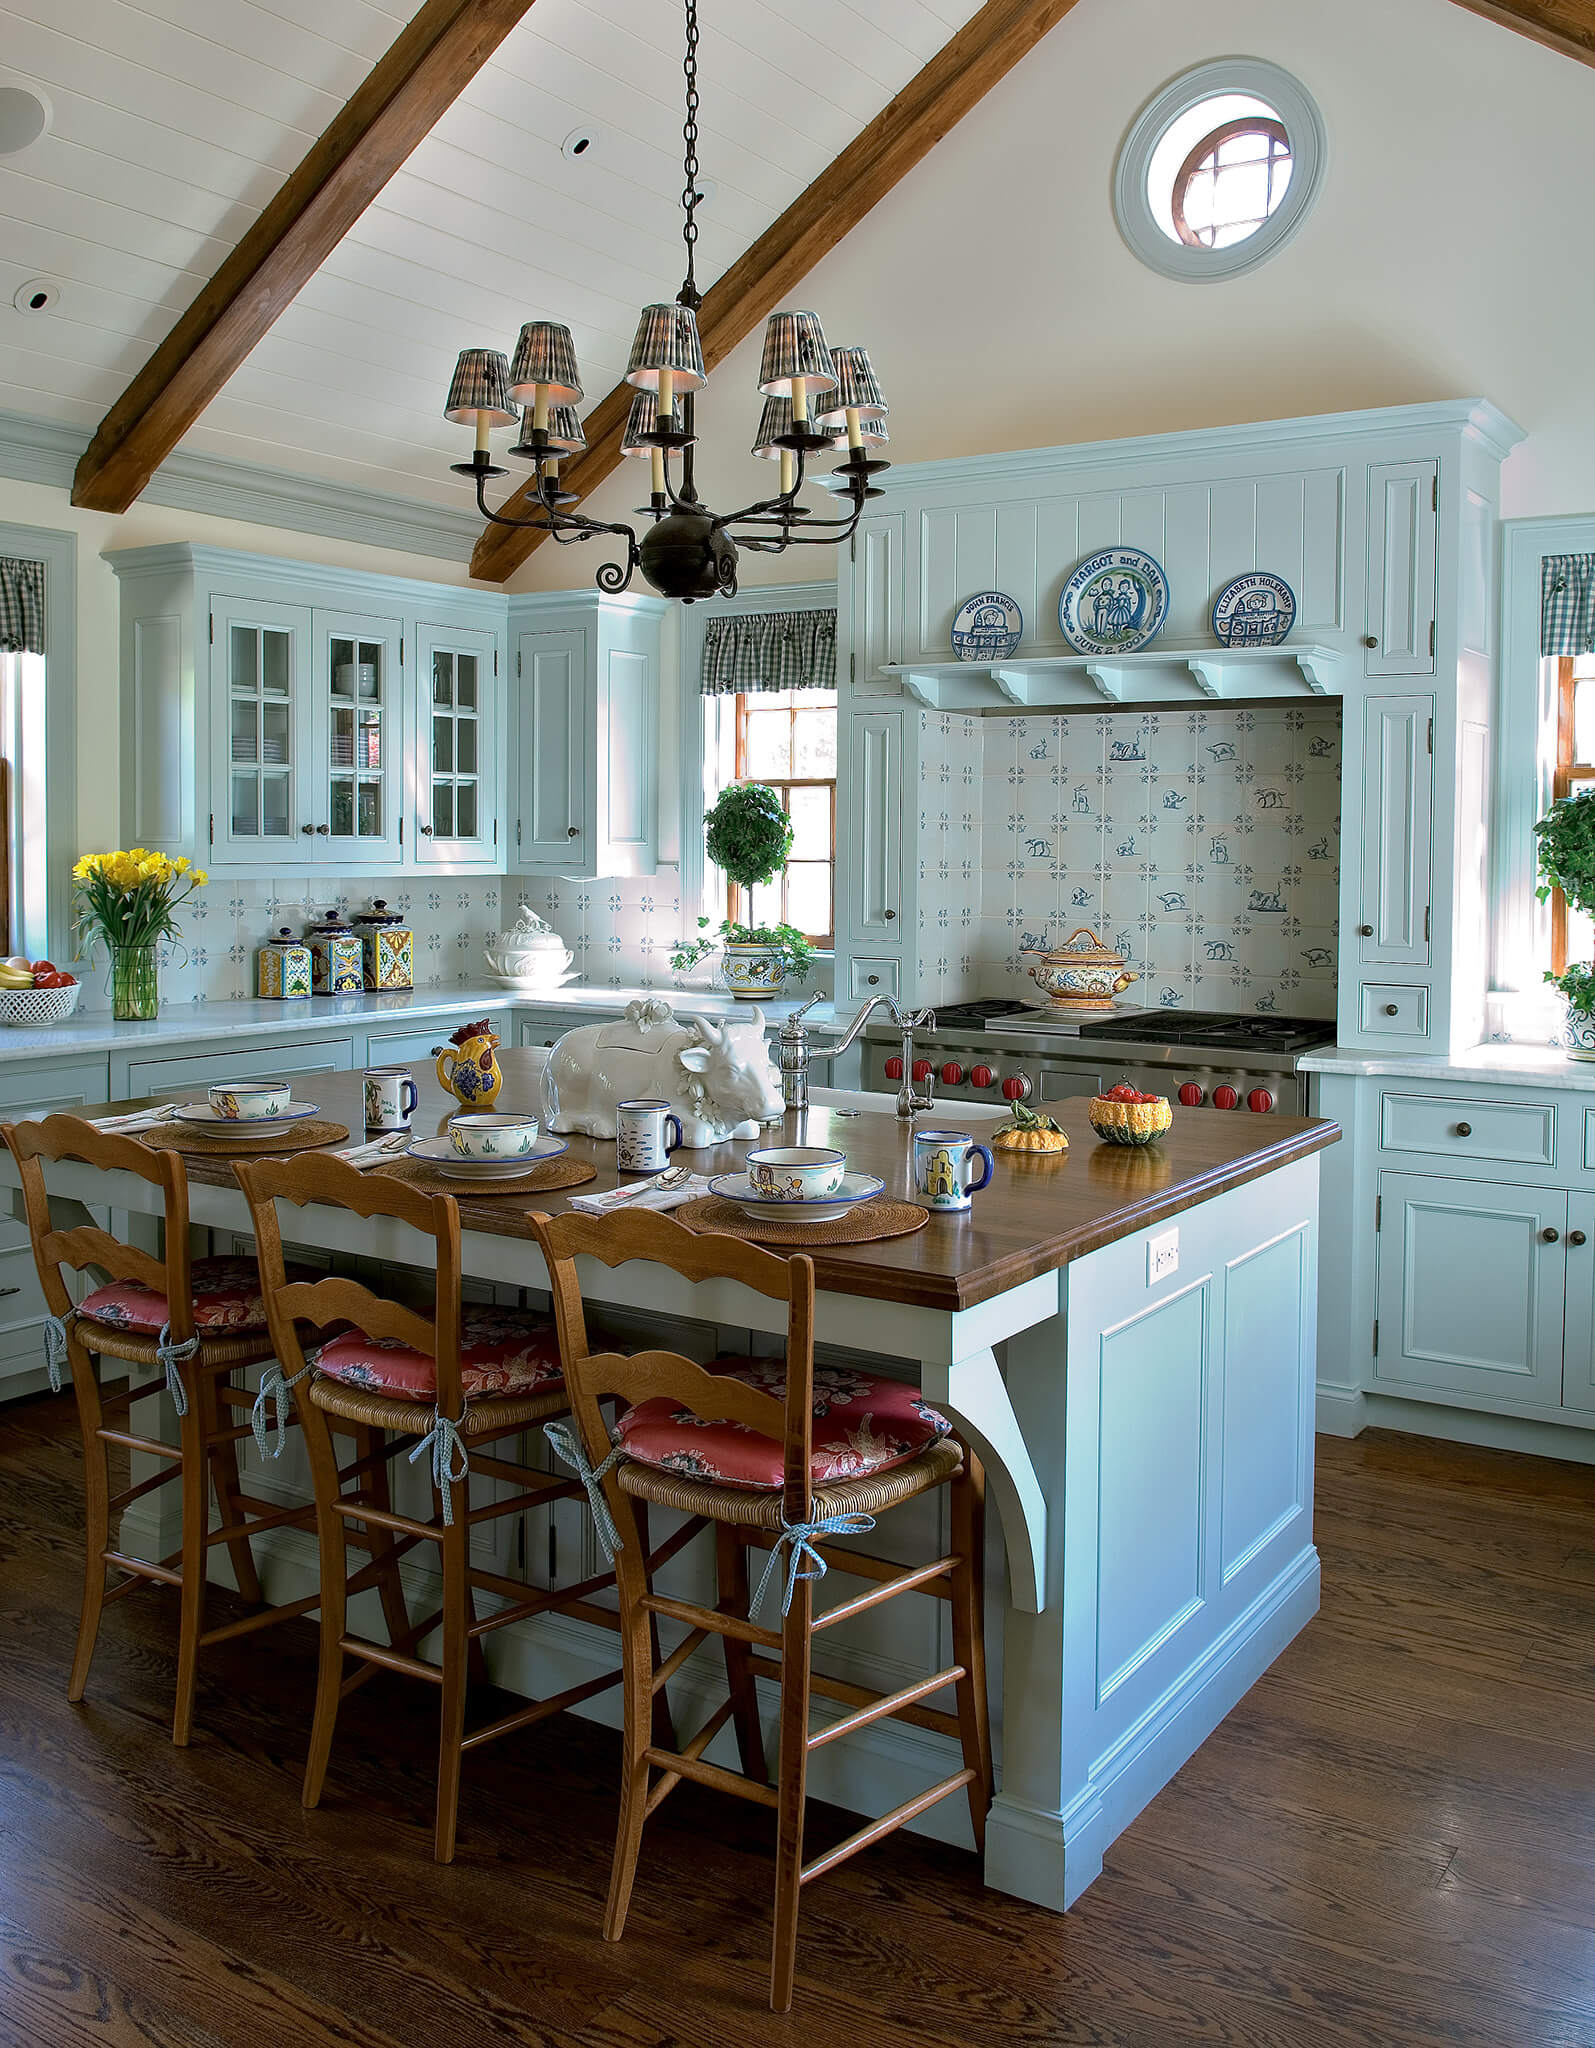 best rustic kitchen cabinets ideas rustic kitchen cabinets Robin s Egg Blue Hued Kitchen Cabinets